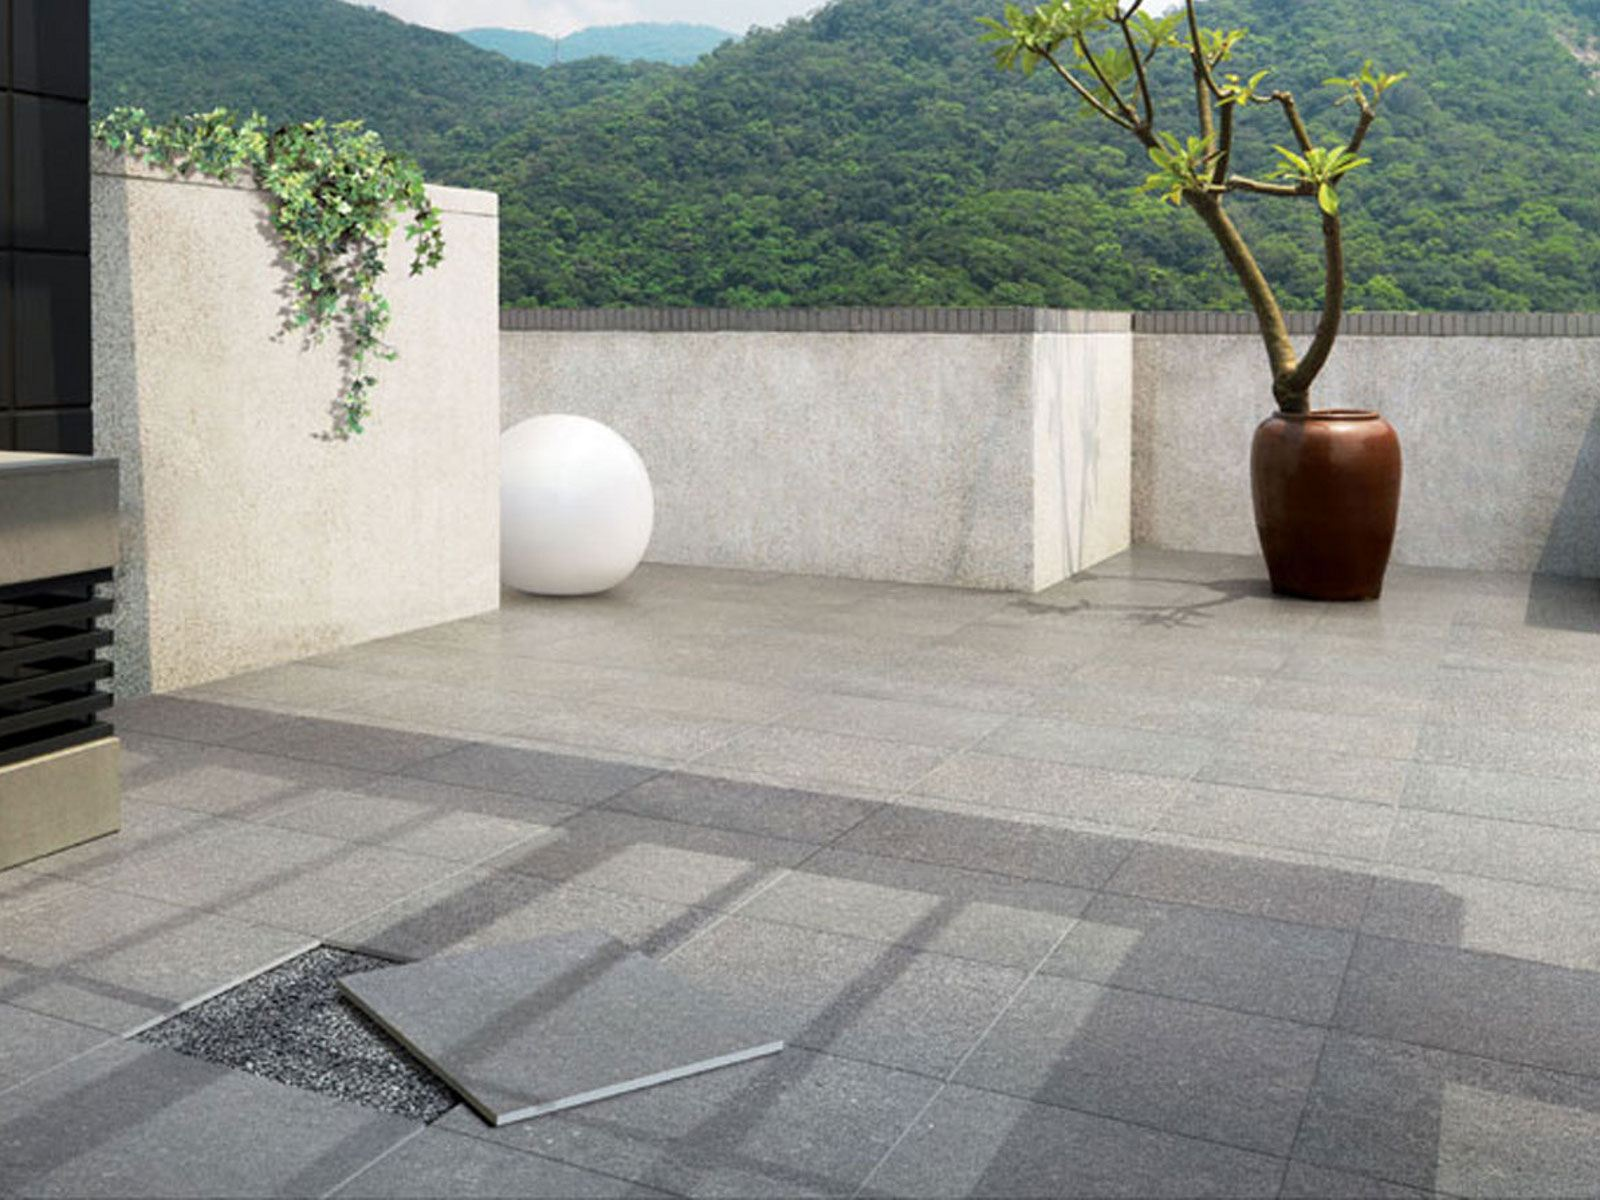 porcelain stoneware outdoor floor tiles out 2 0 out 2 0 collection by ceramiche refin. Black Bedroom Furniture Sets. Home Design Ideas